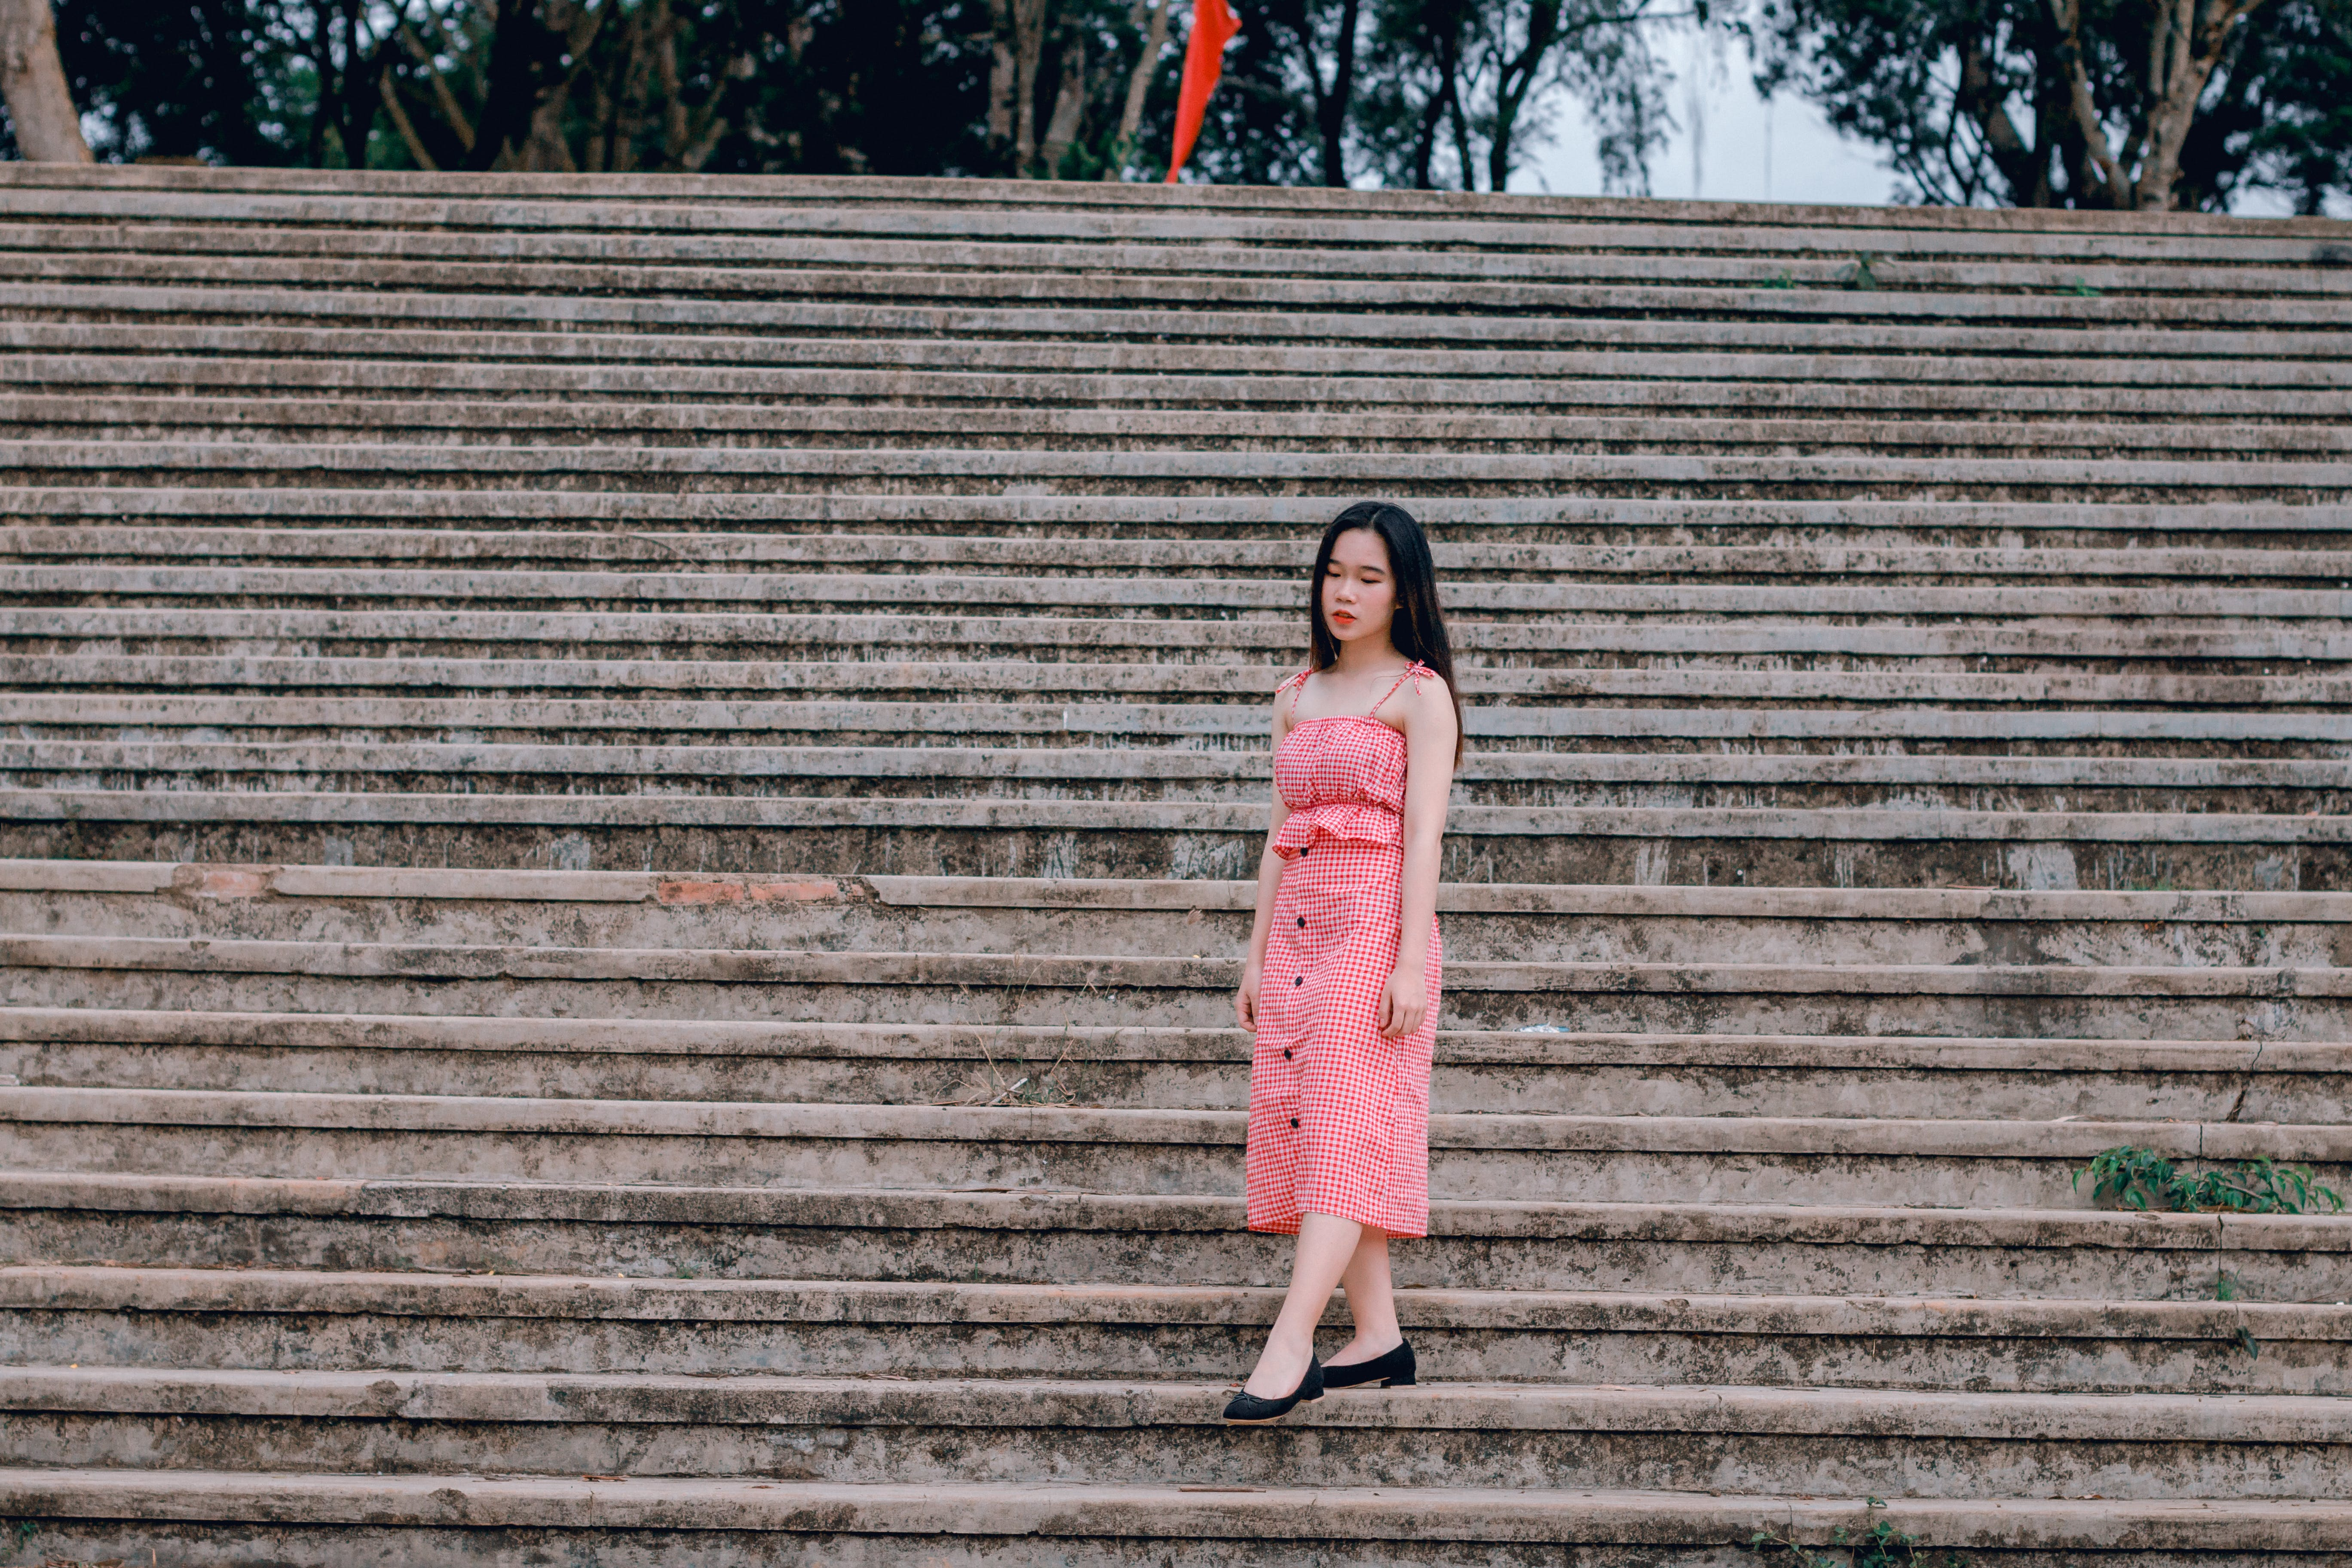 Woman Wearing Pink Spaghetti-strap Dress Standing on Grey Concrete Stairs